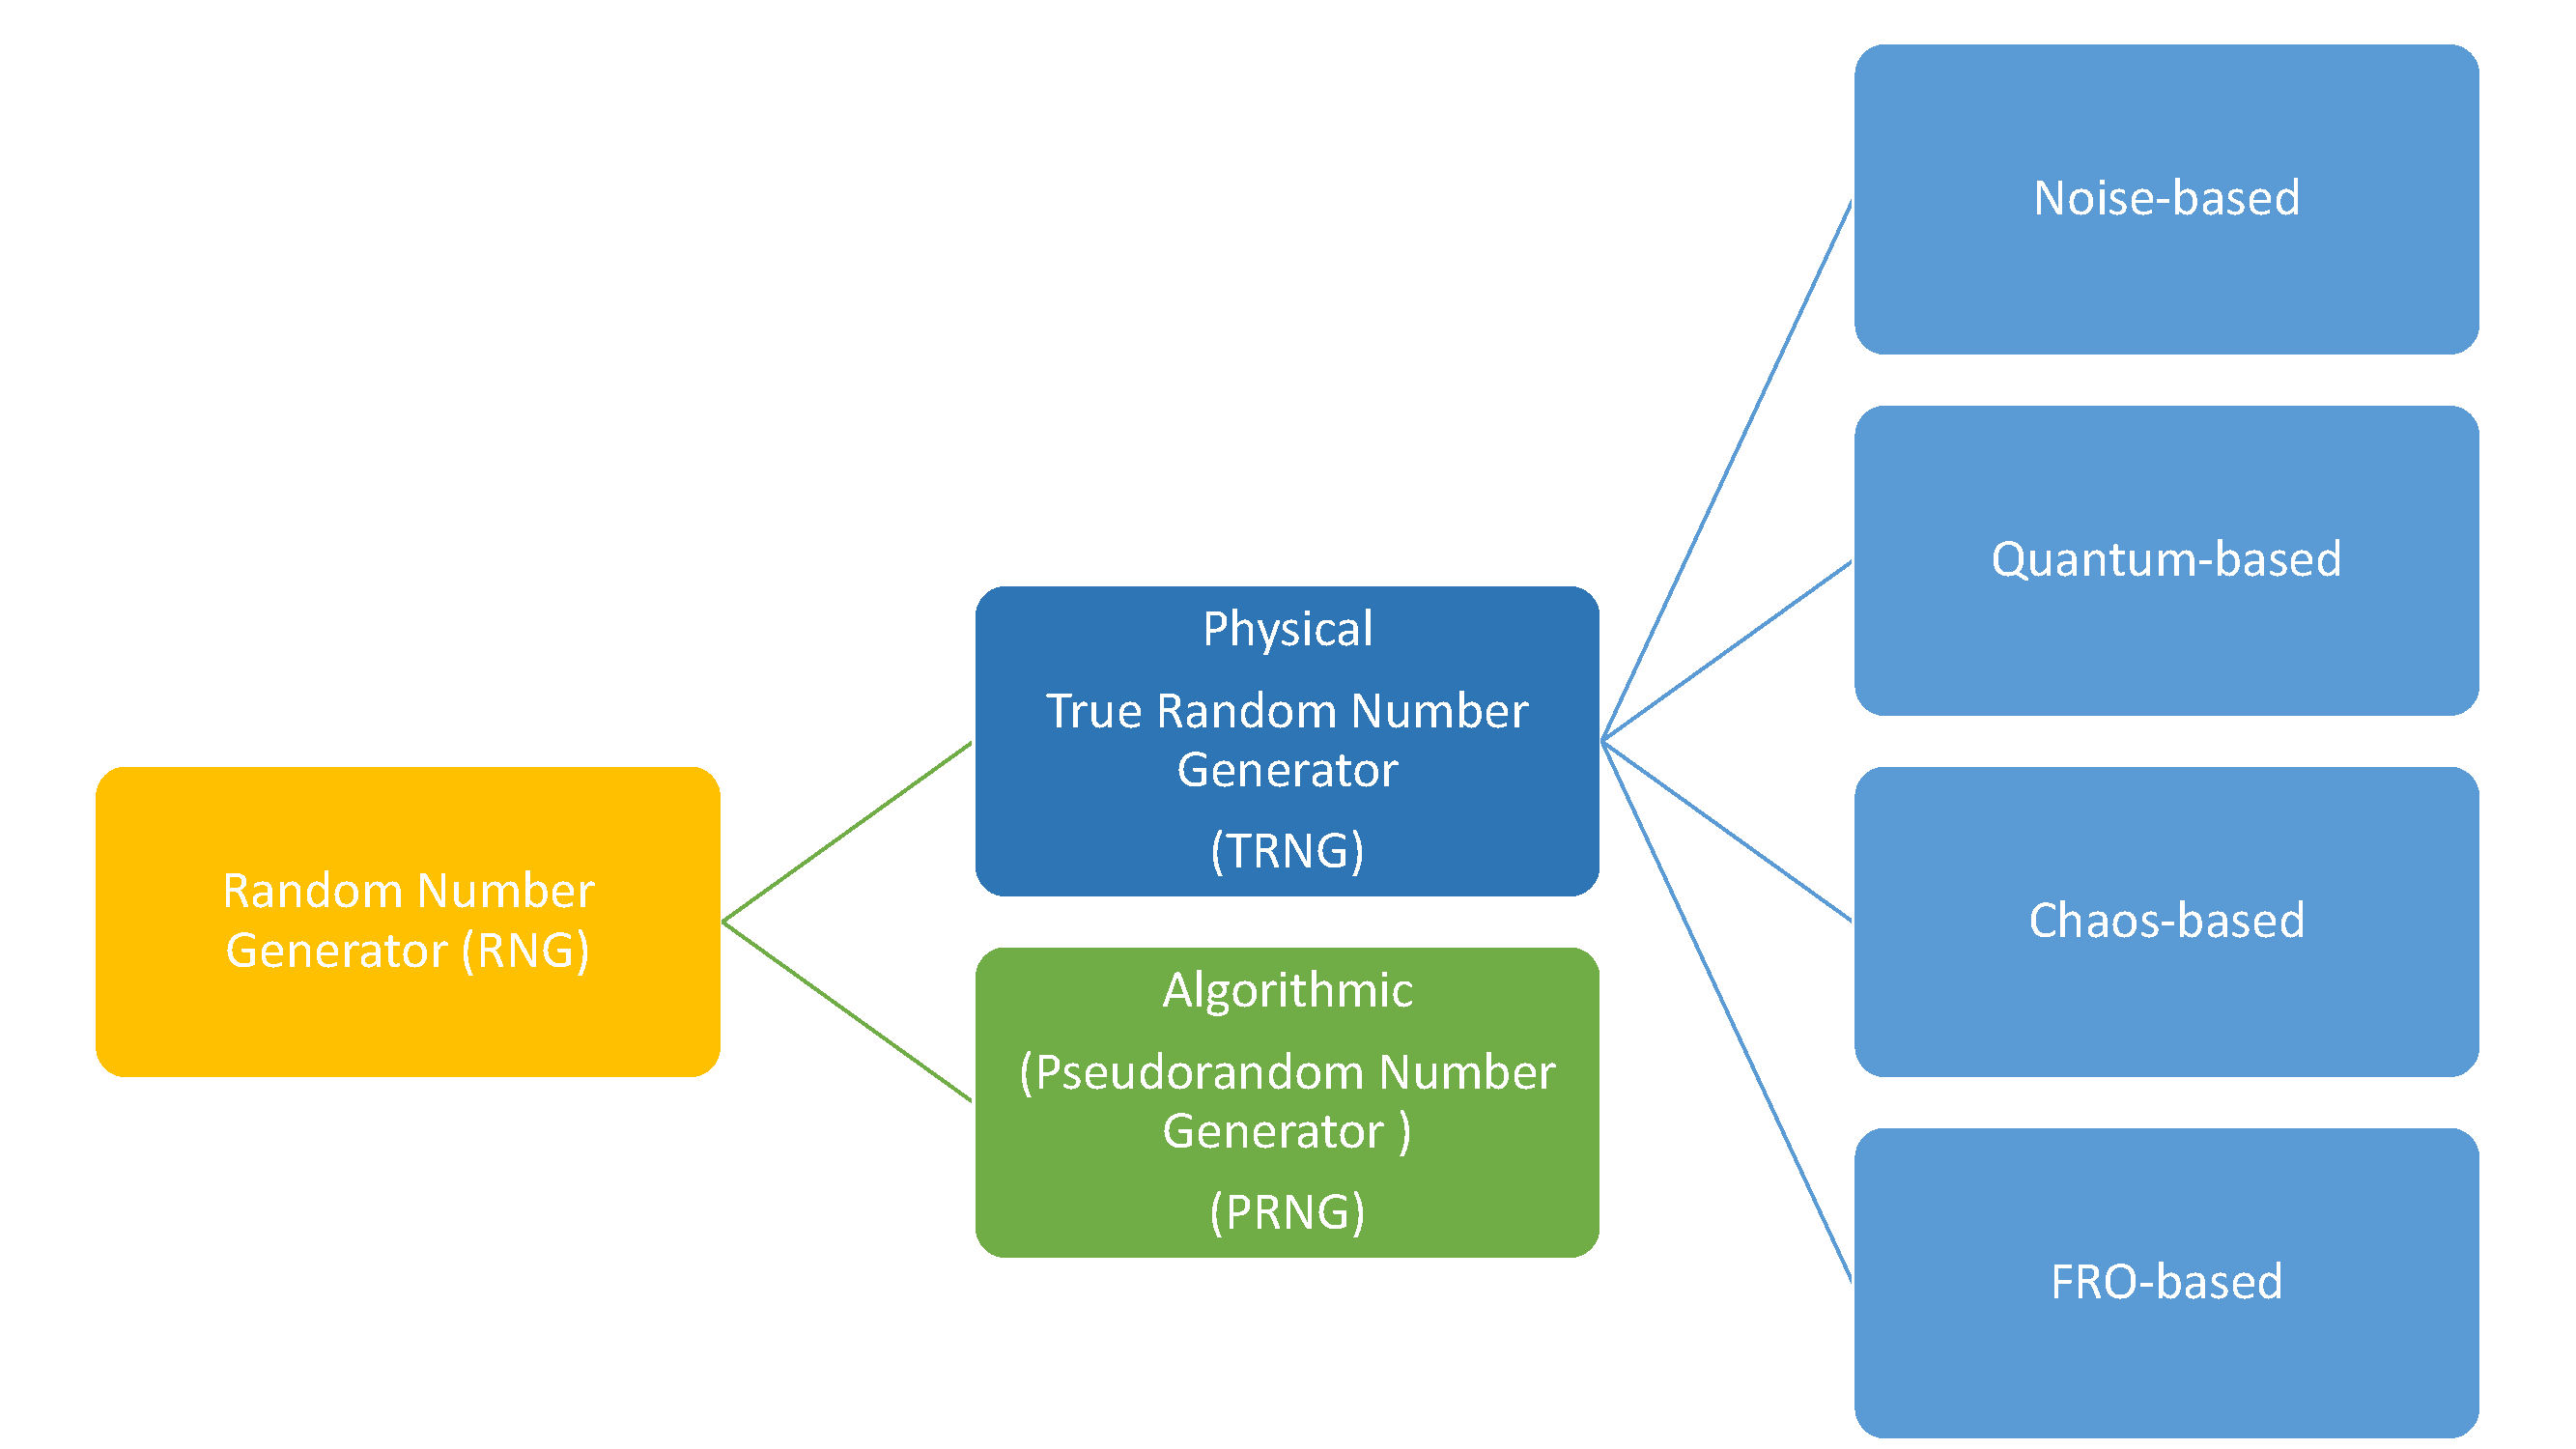 classification of Random Number Generator